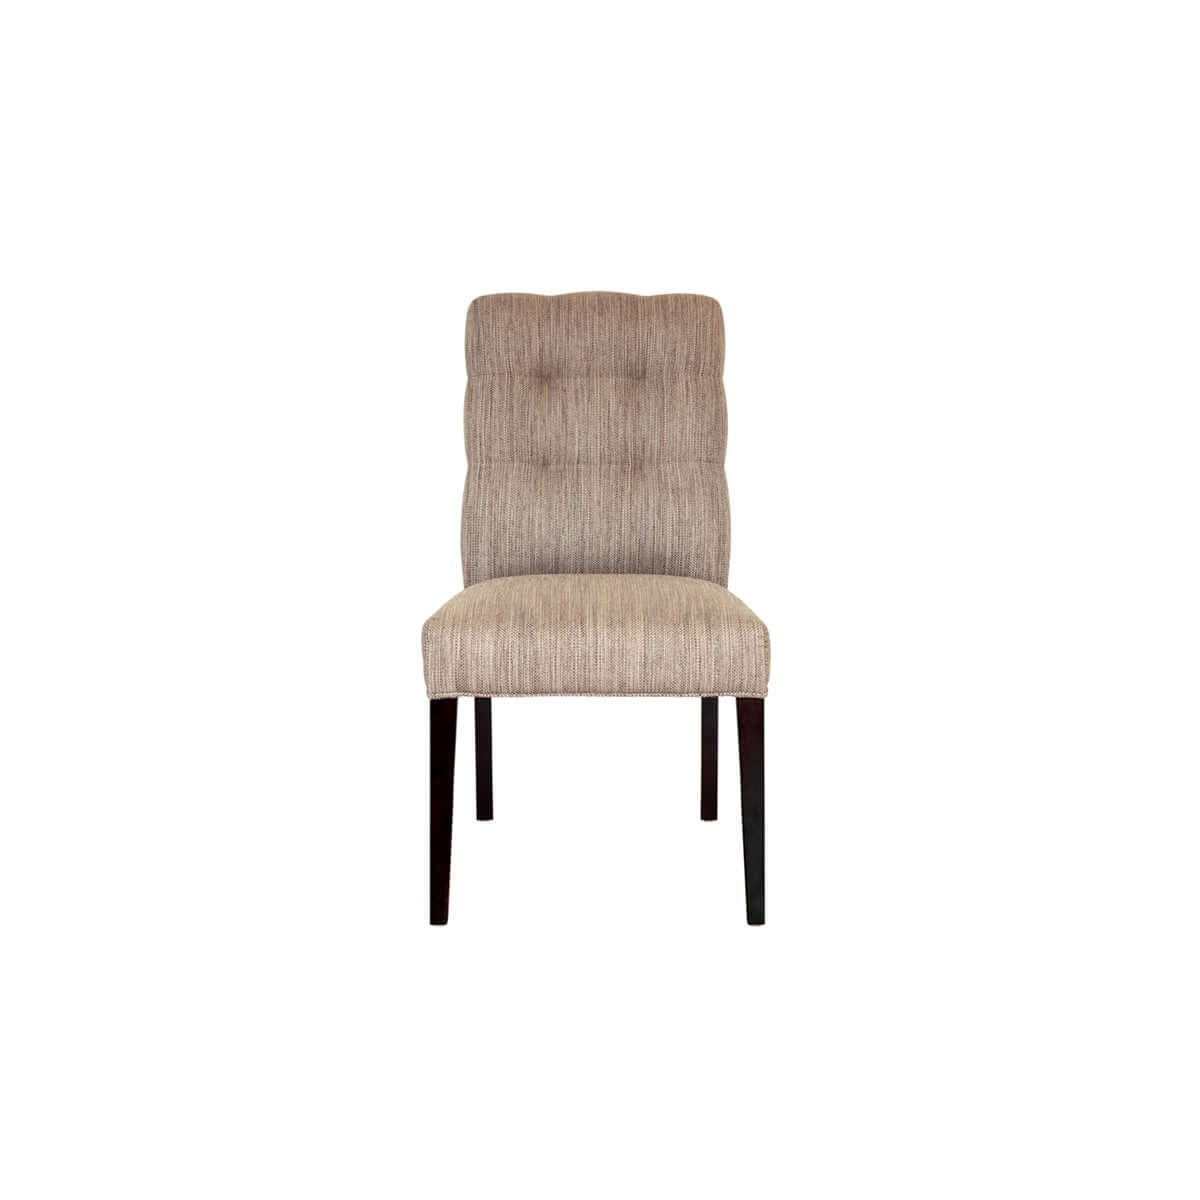 furniture jakarta indonesia bali dining chair with buttons and wooden legs